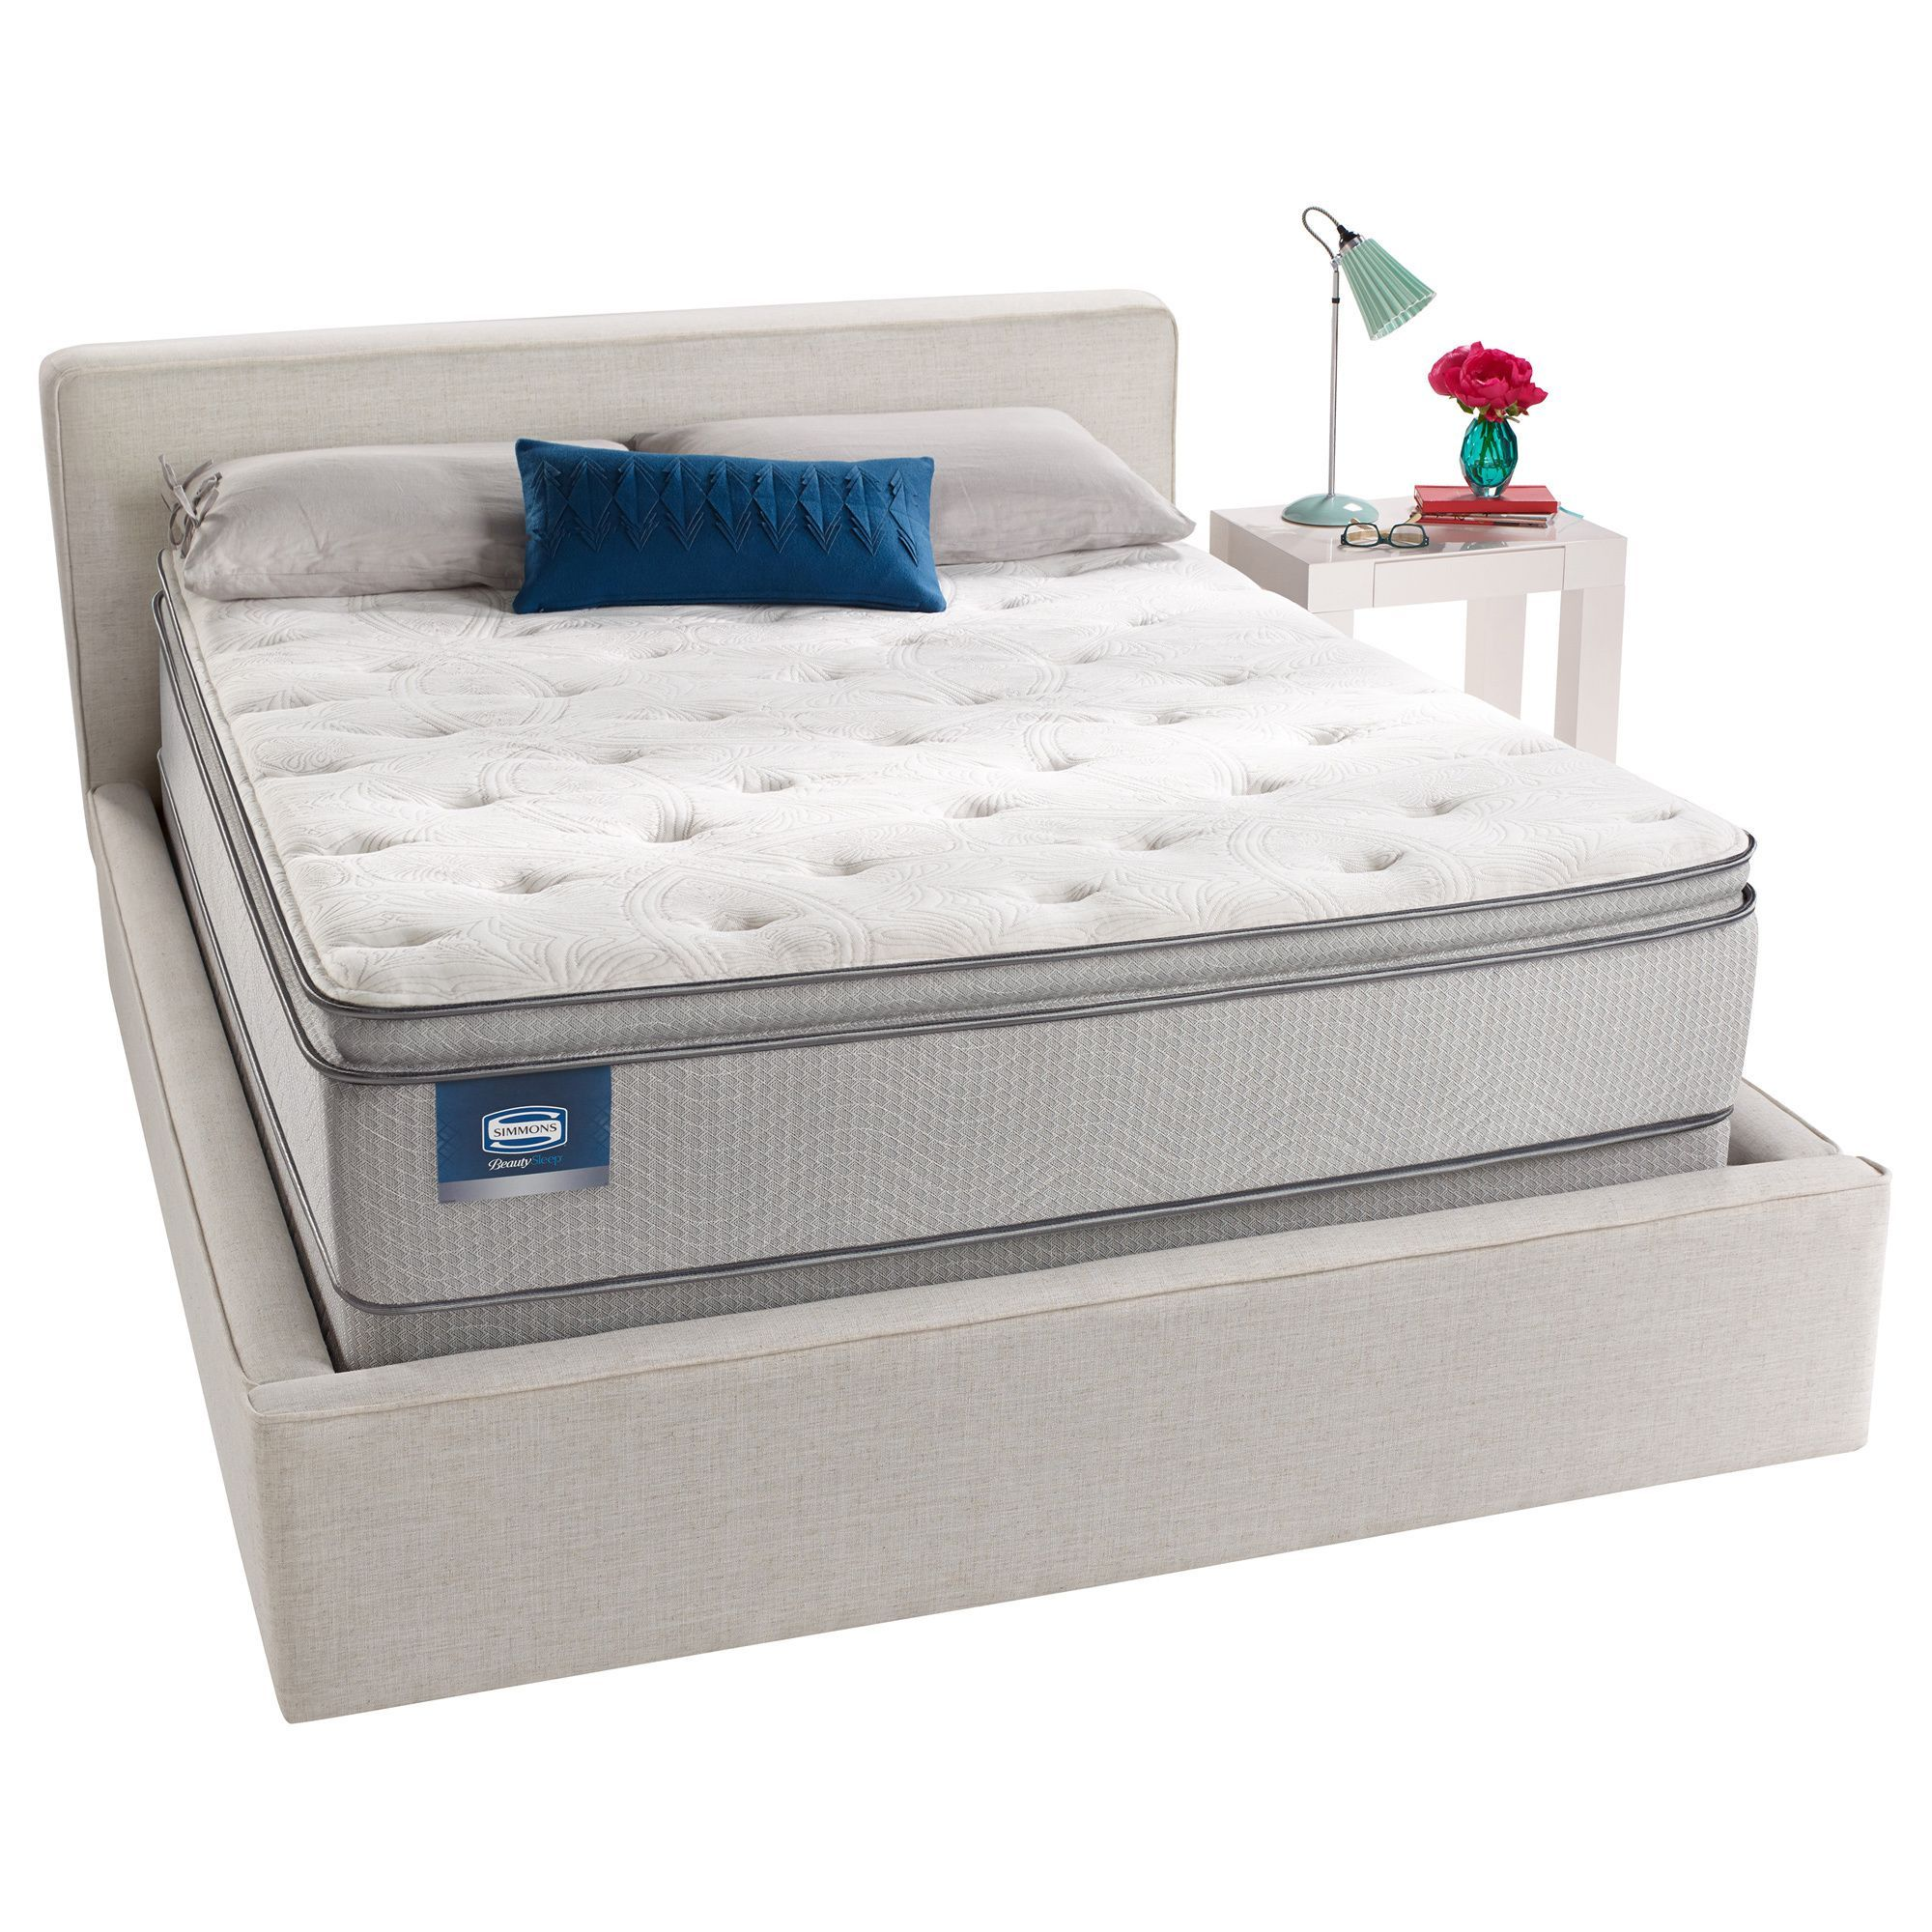 of amazon zinus bed high inspirational fancy new smart box profile king inch best for and size mattress spring